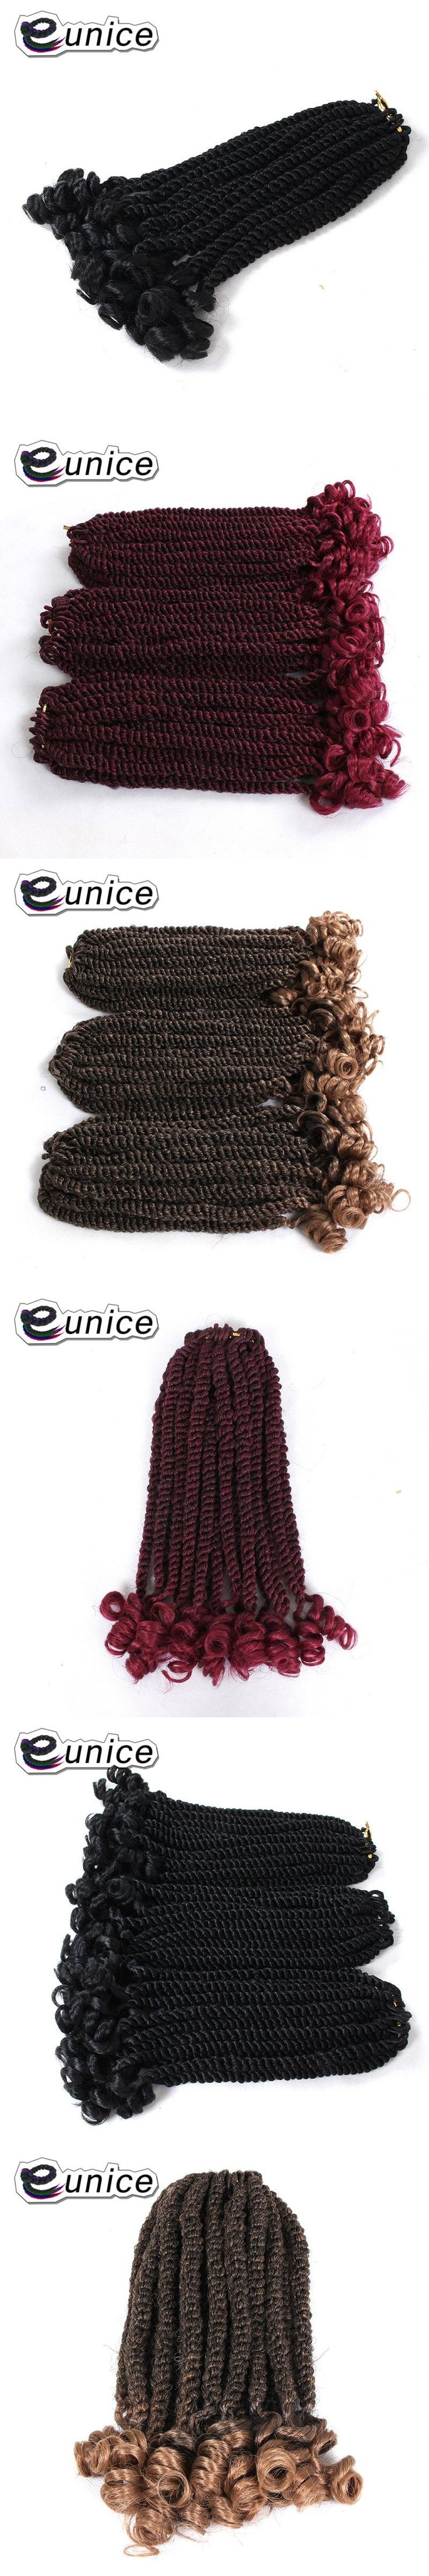 Eunice 12inch Havana Twist Braids 3colors Available Synthetic Hair Extension Ombre BUG Braiding Hair High Temperature Fiber